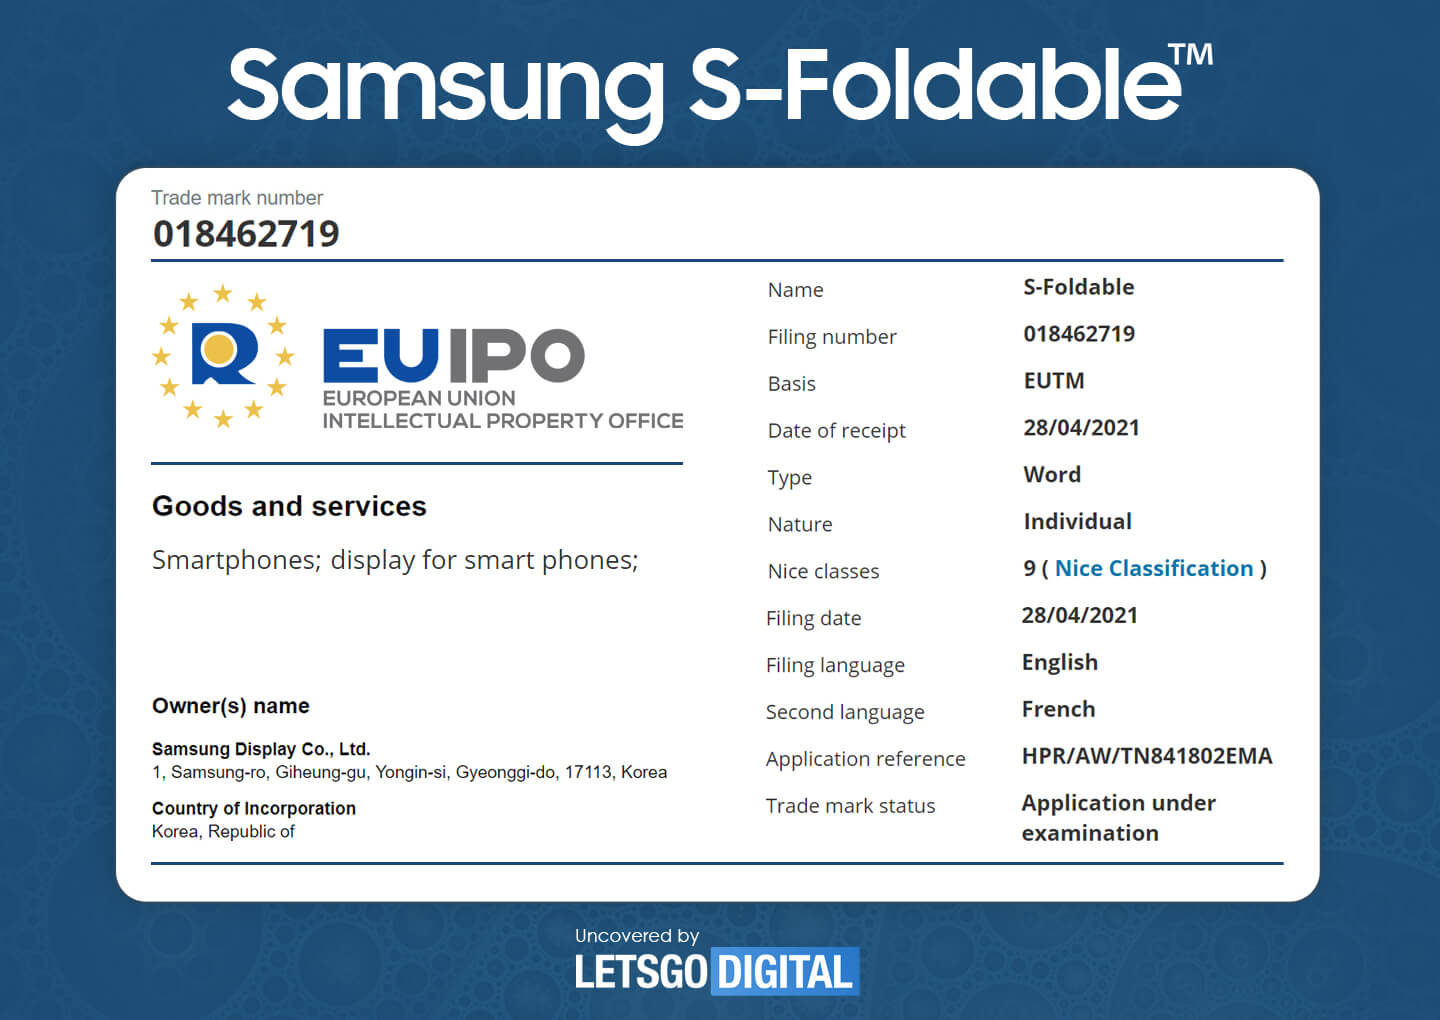 Samsung Files a Trademark for S-Foldable, a New Display for Foldable Devices